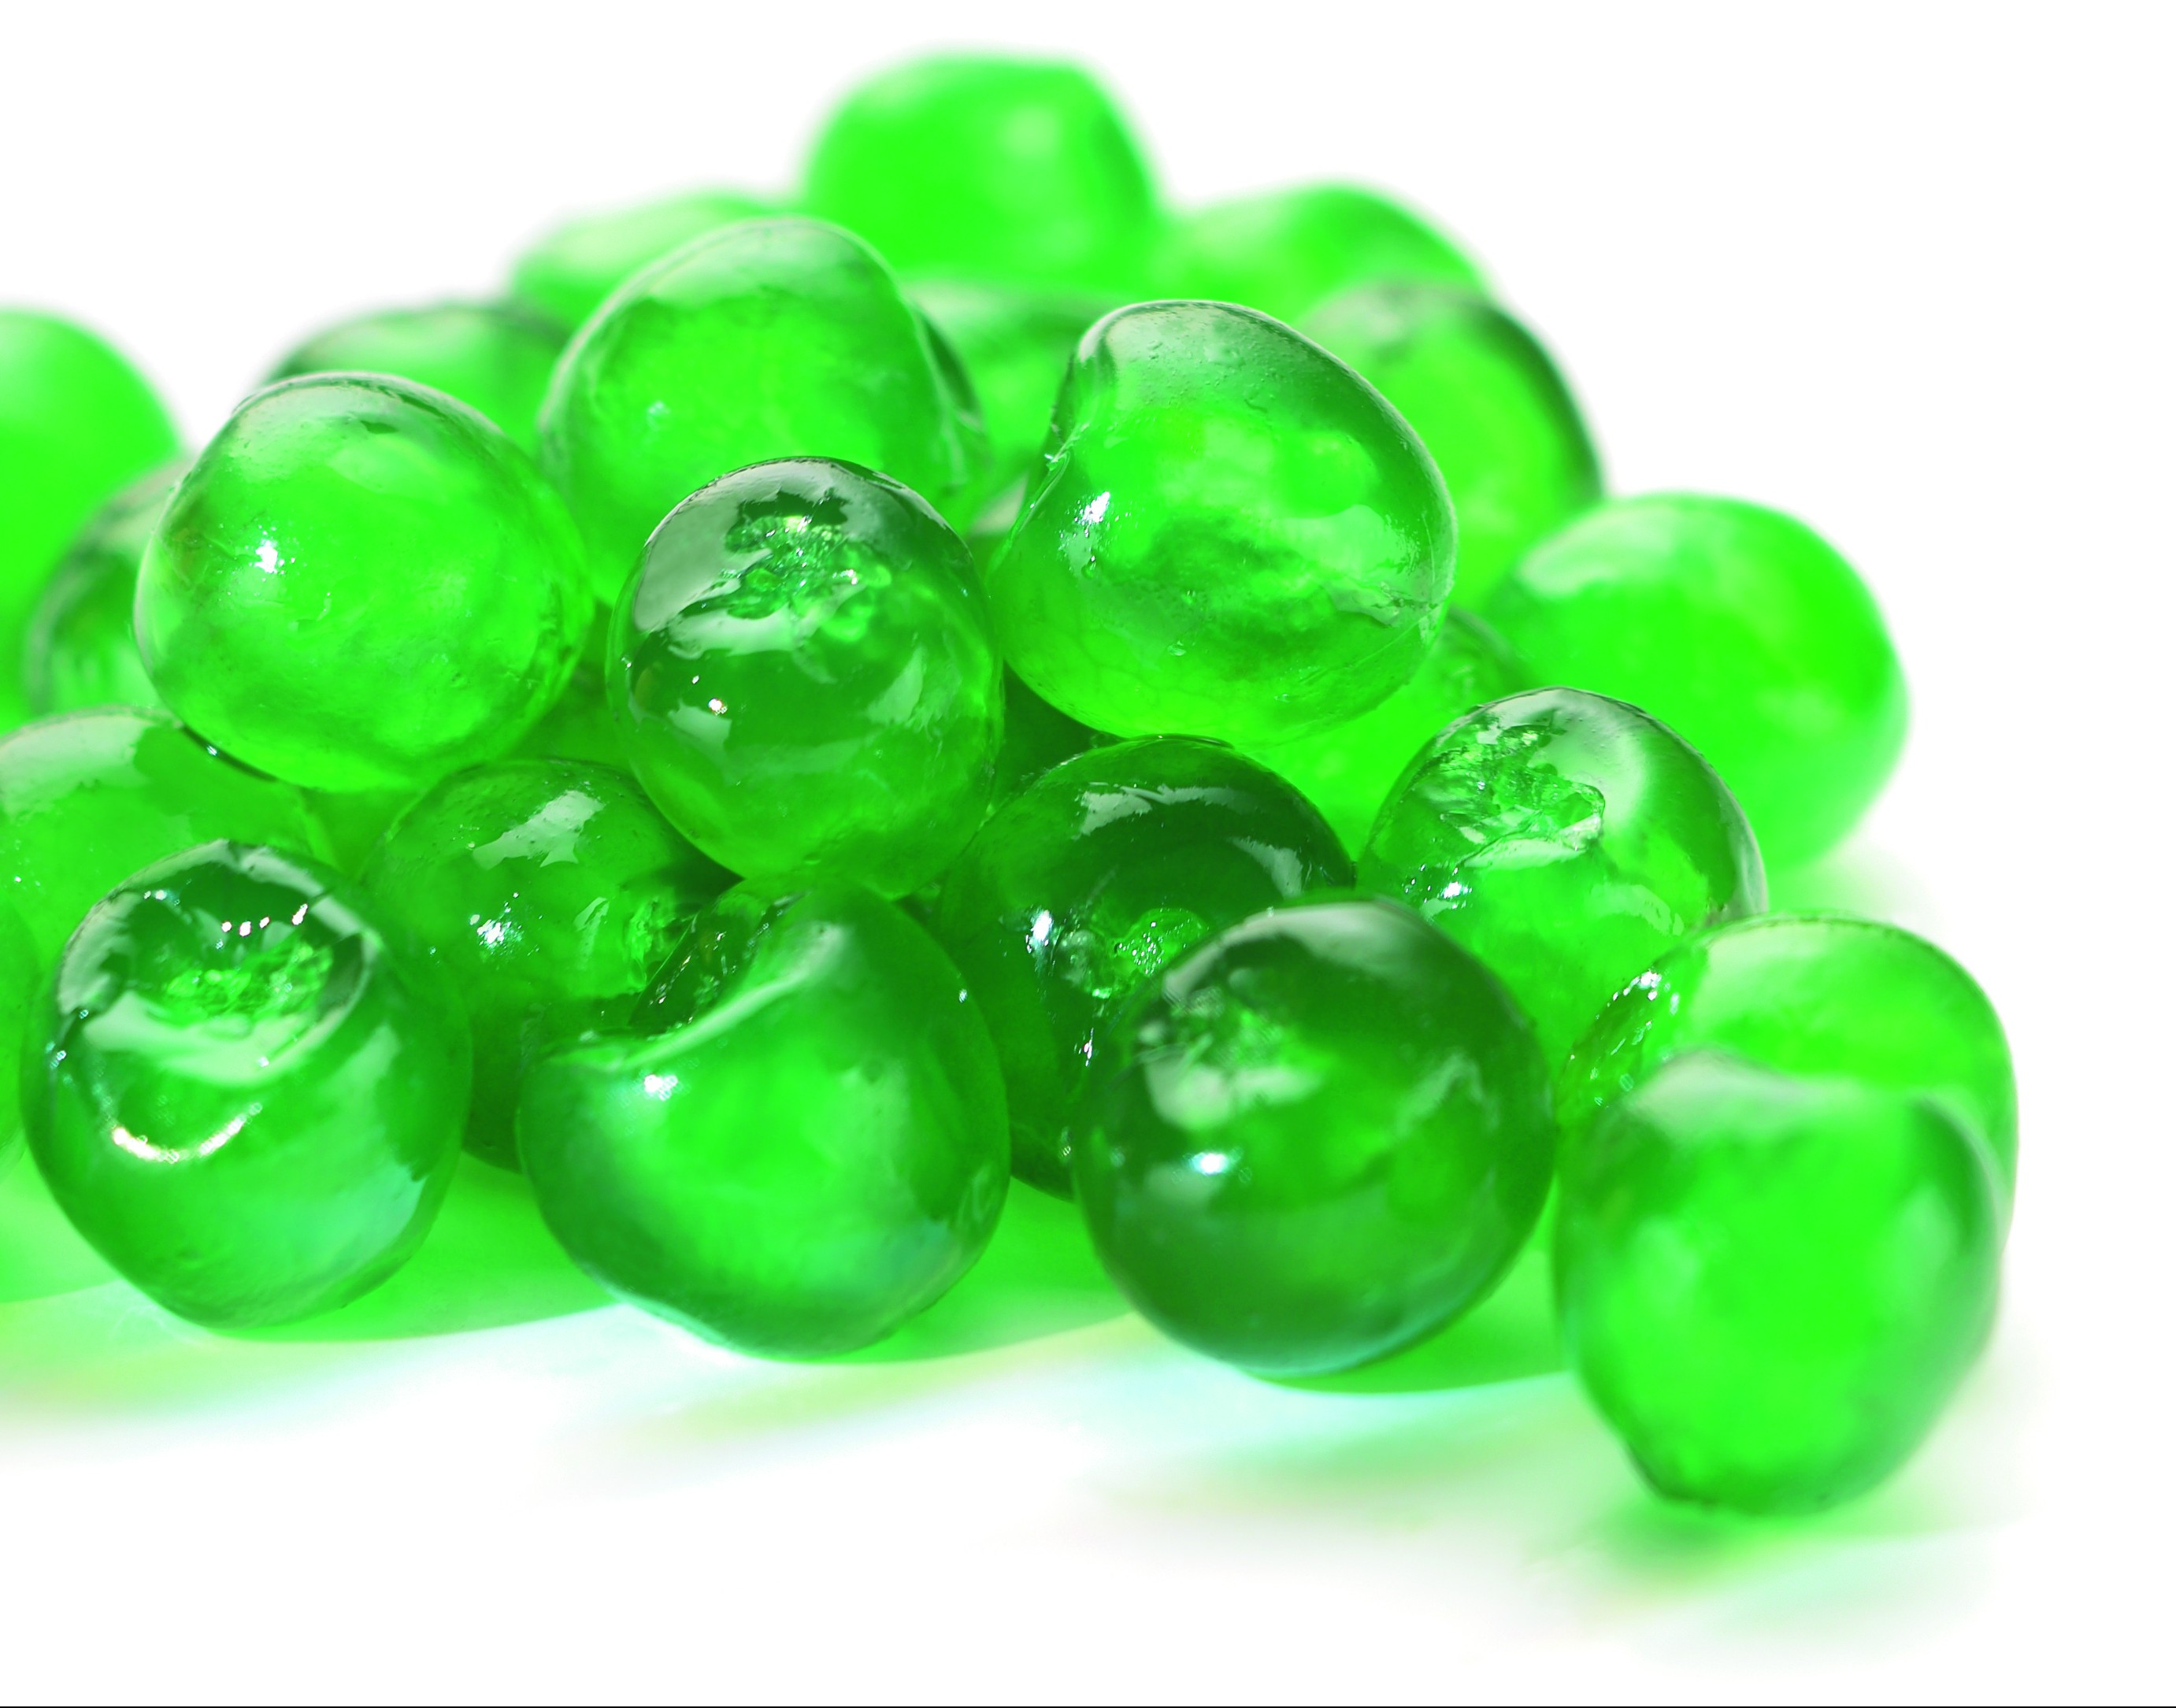 GREEN WHOLE GLACE CHERRIES-2-36094